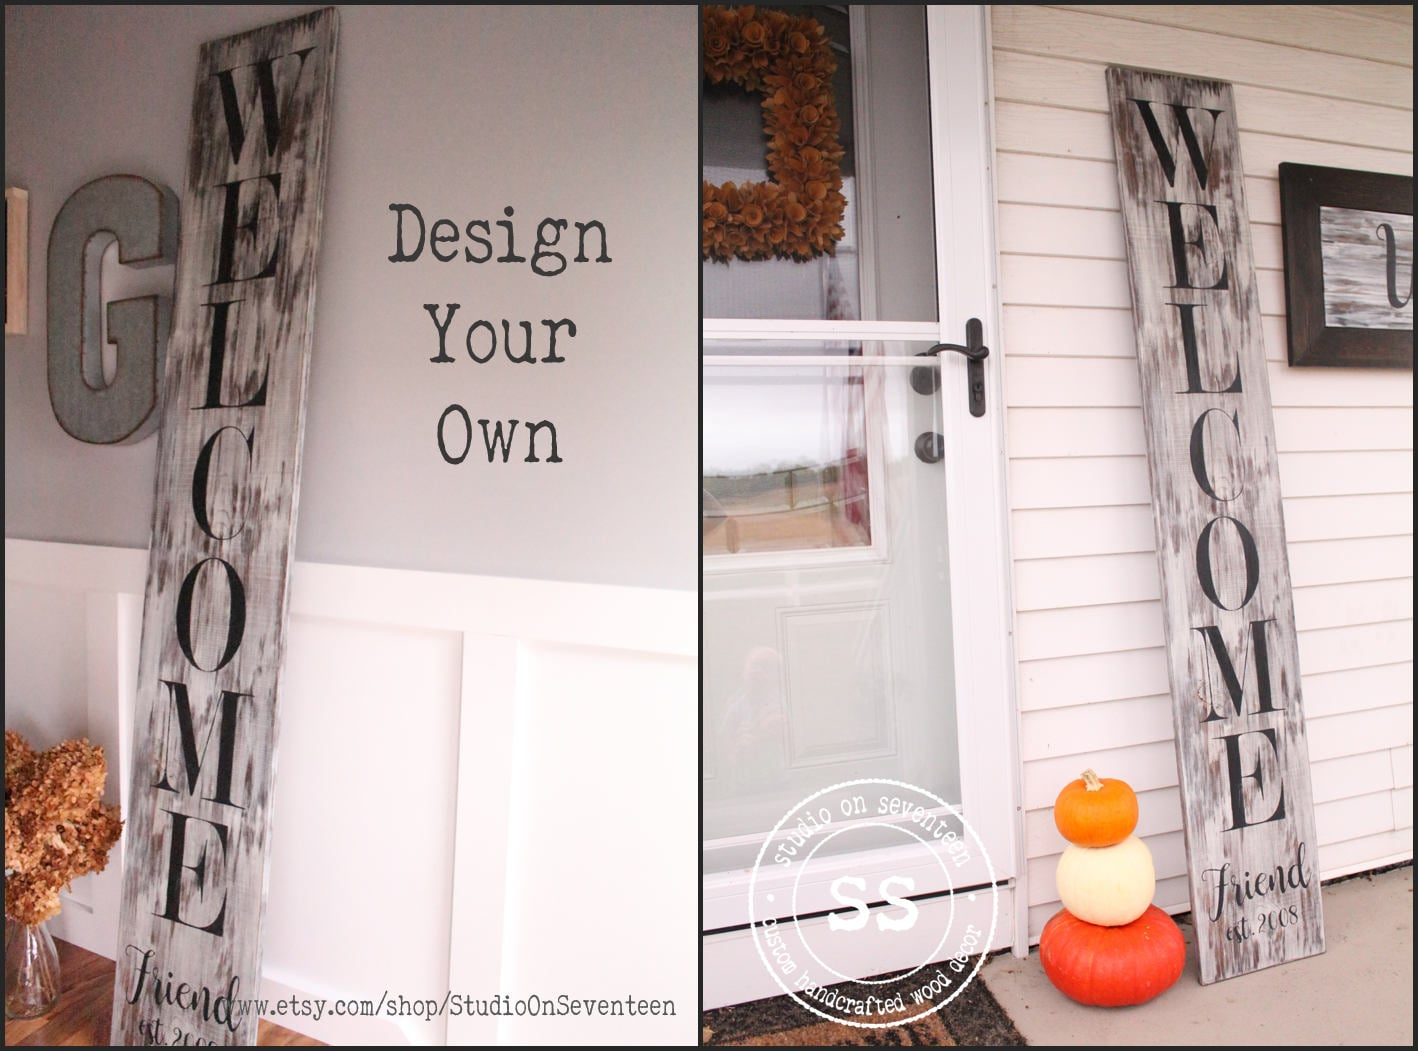 Design Your Own Personalized Custom Porch Sign Large Wood